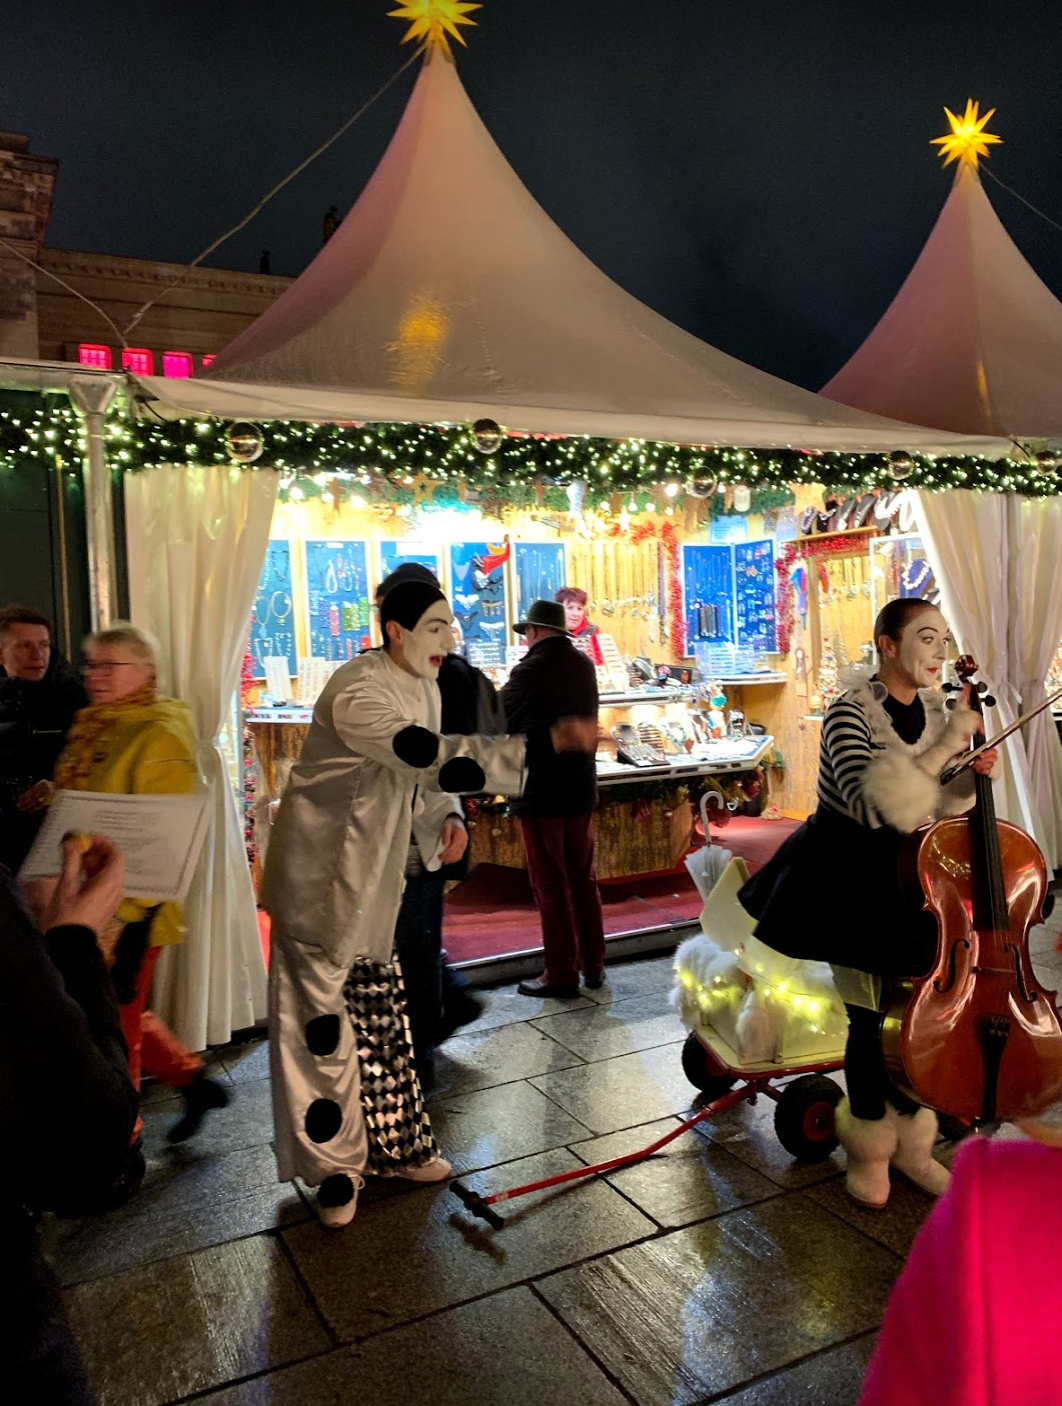 Entertainers at the Christmas market